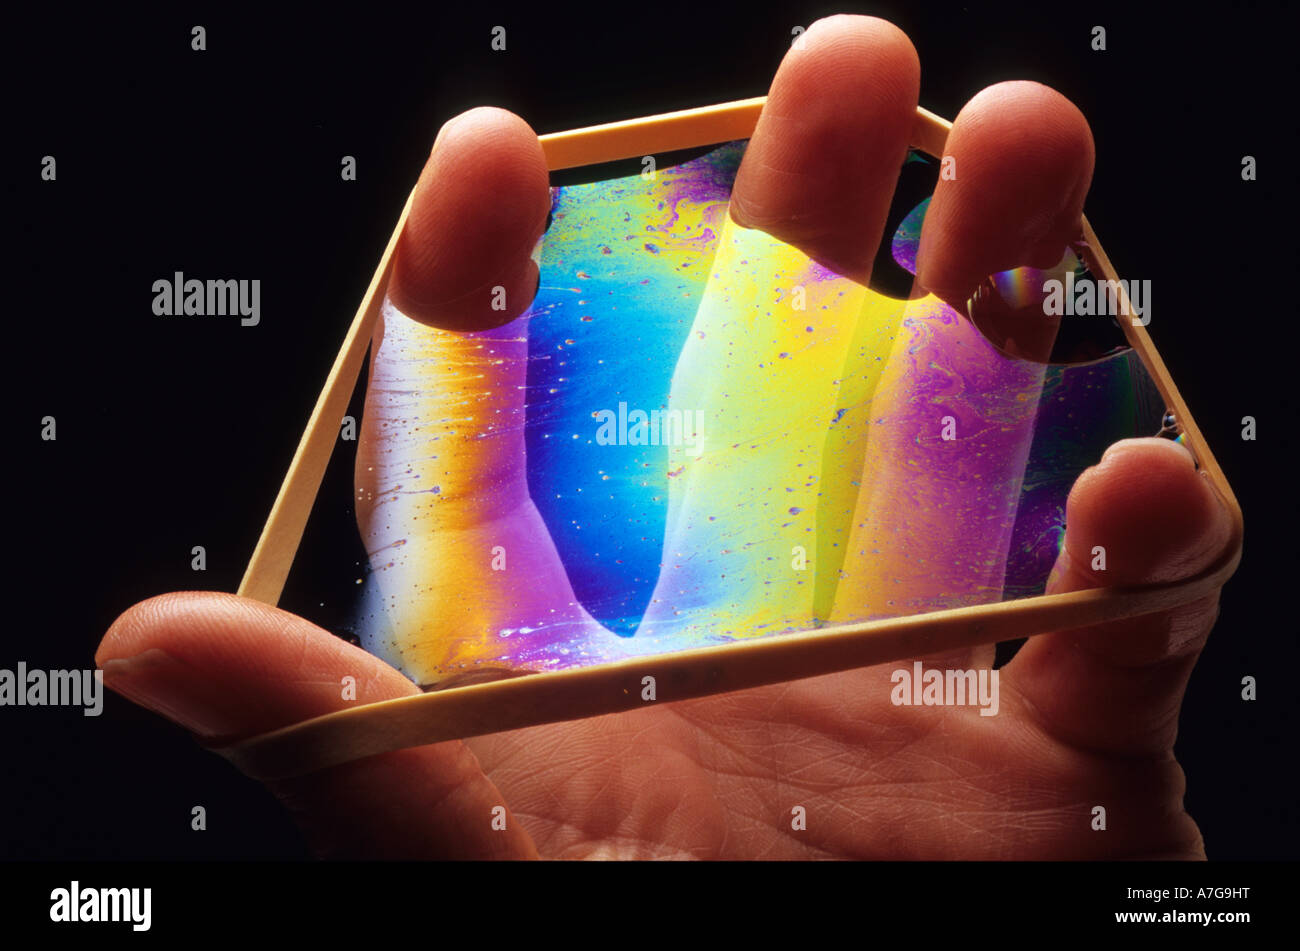 Hand-Rainbow 2 Stockbild